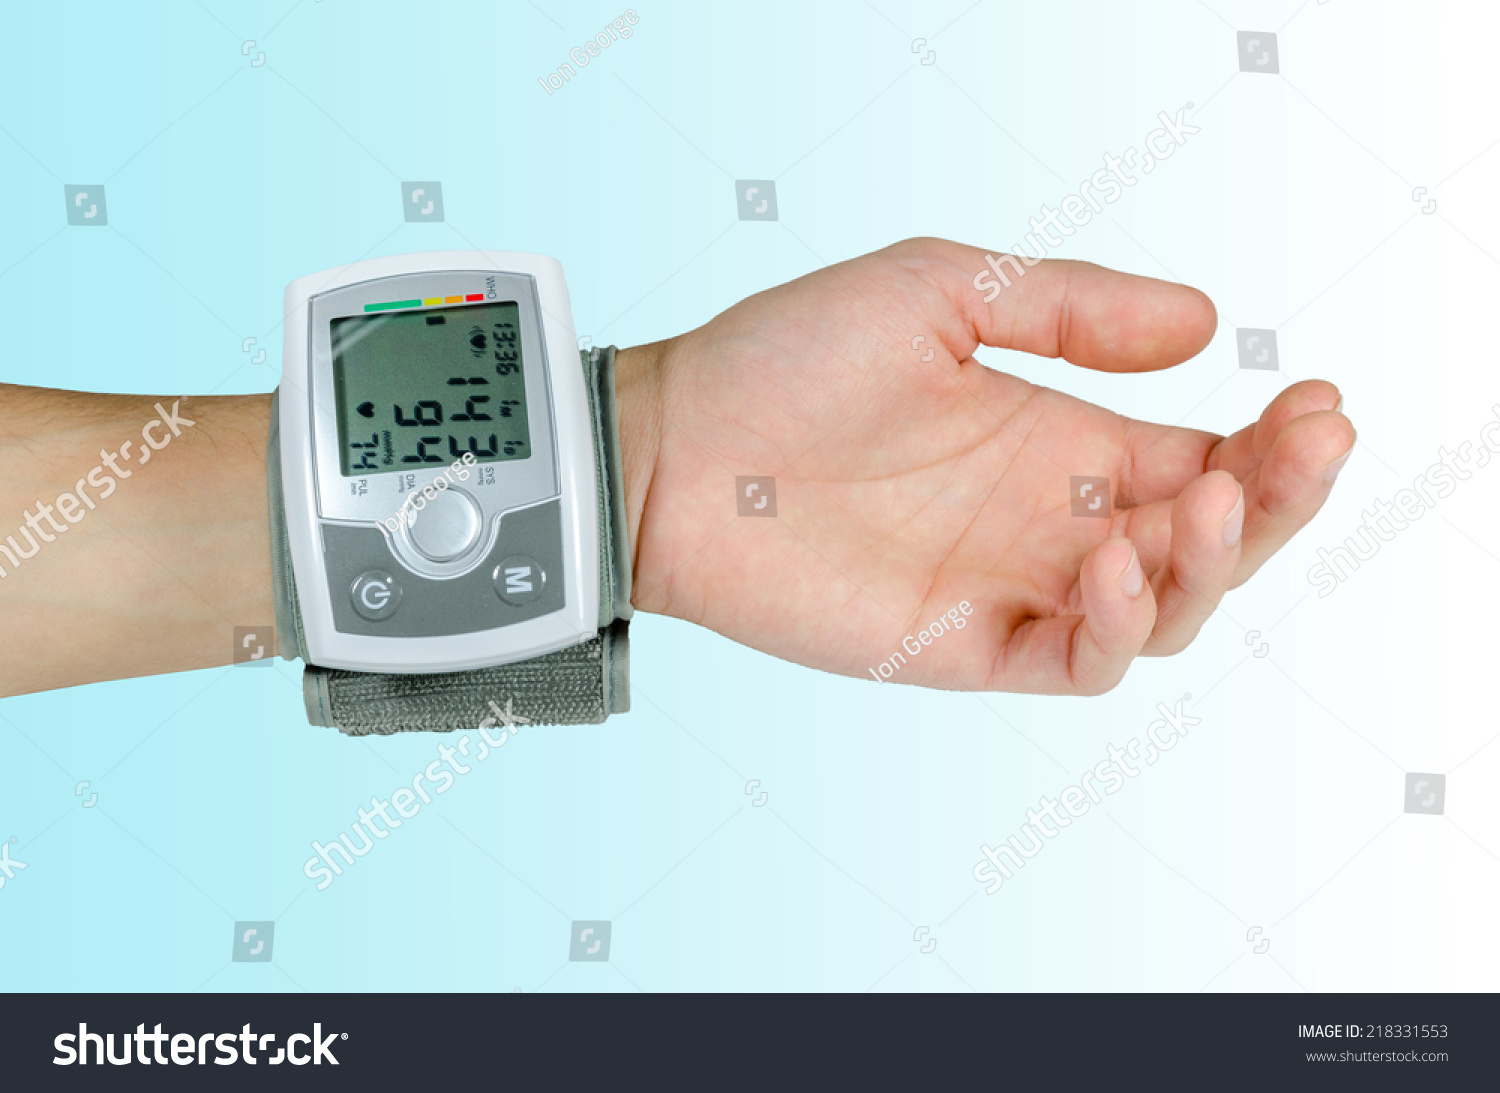 Use Electric Measuring Devices : Electrical device for measuring blood pressure and heart